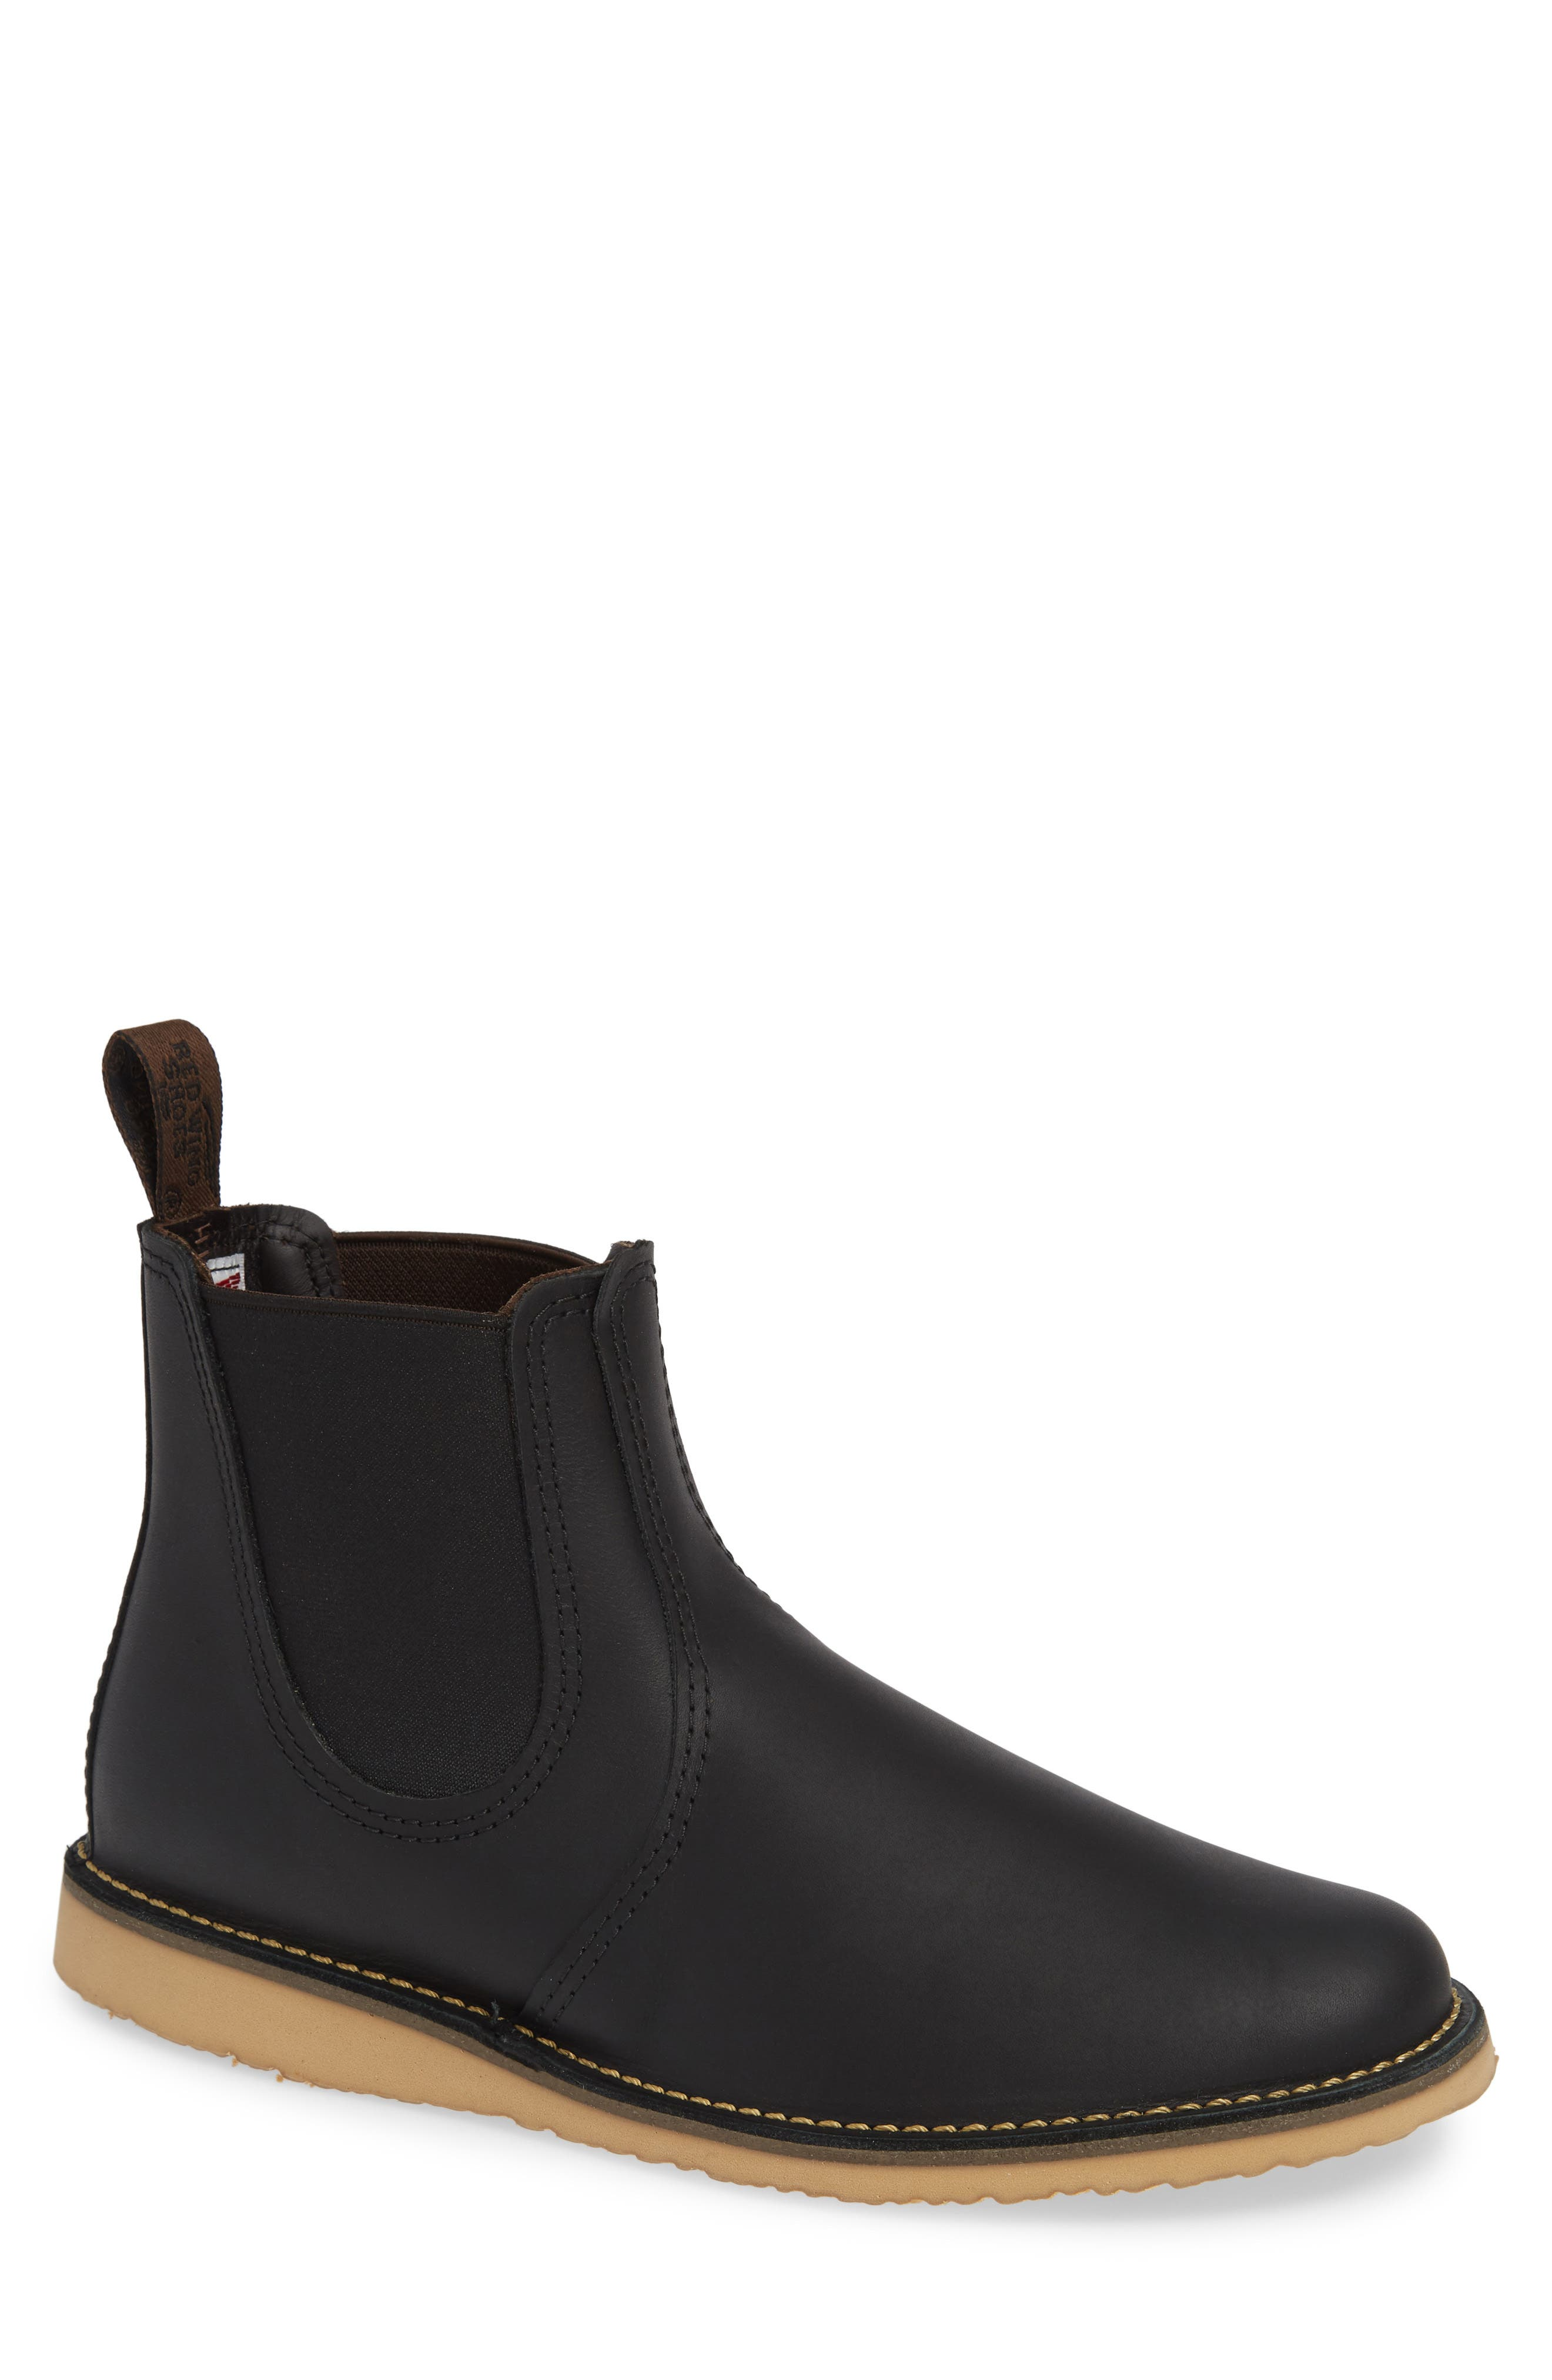 RED WING,                             Chelsea Boot,                             Main thumbnail 1, color,                             BLACK HARNESS LEATHER